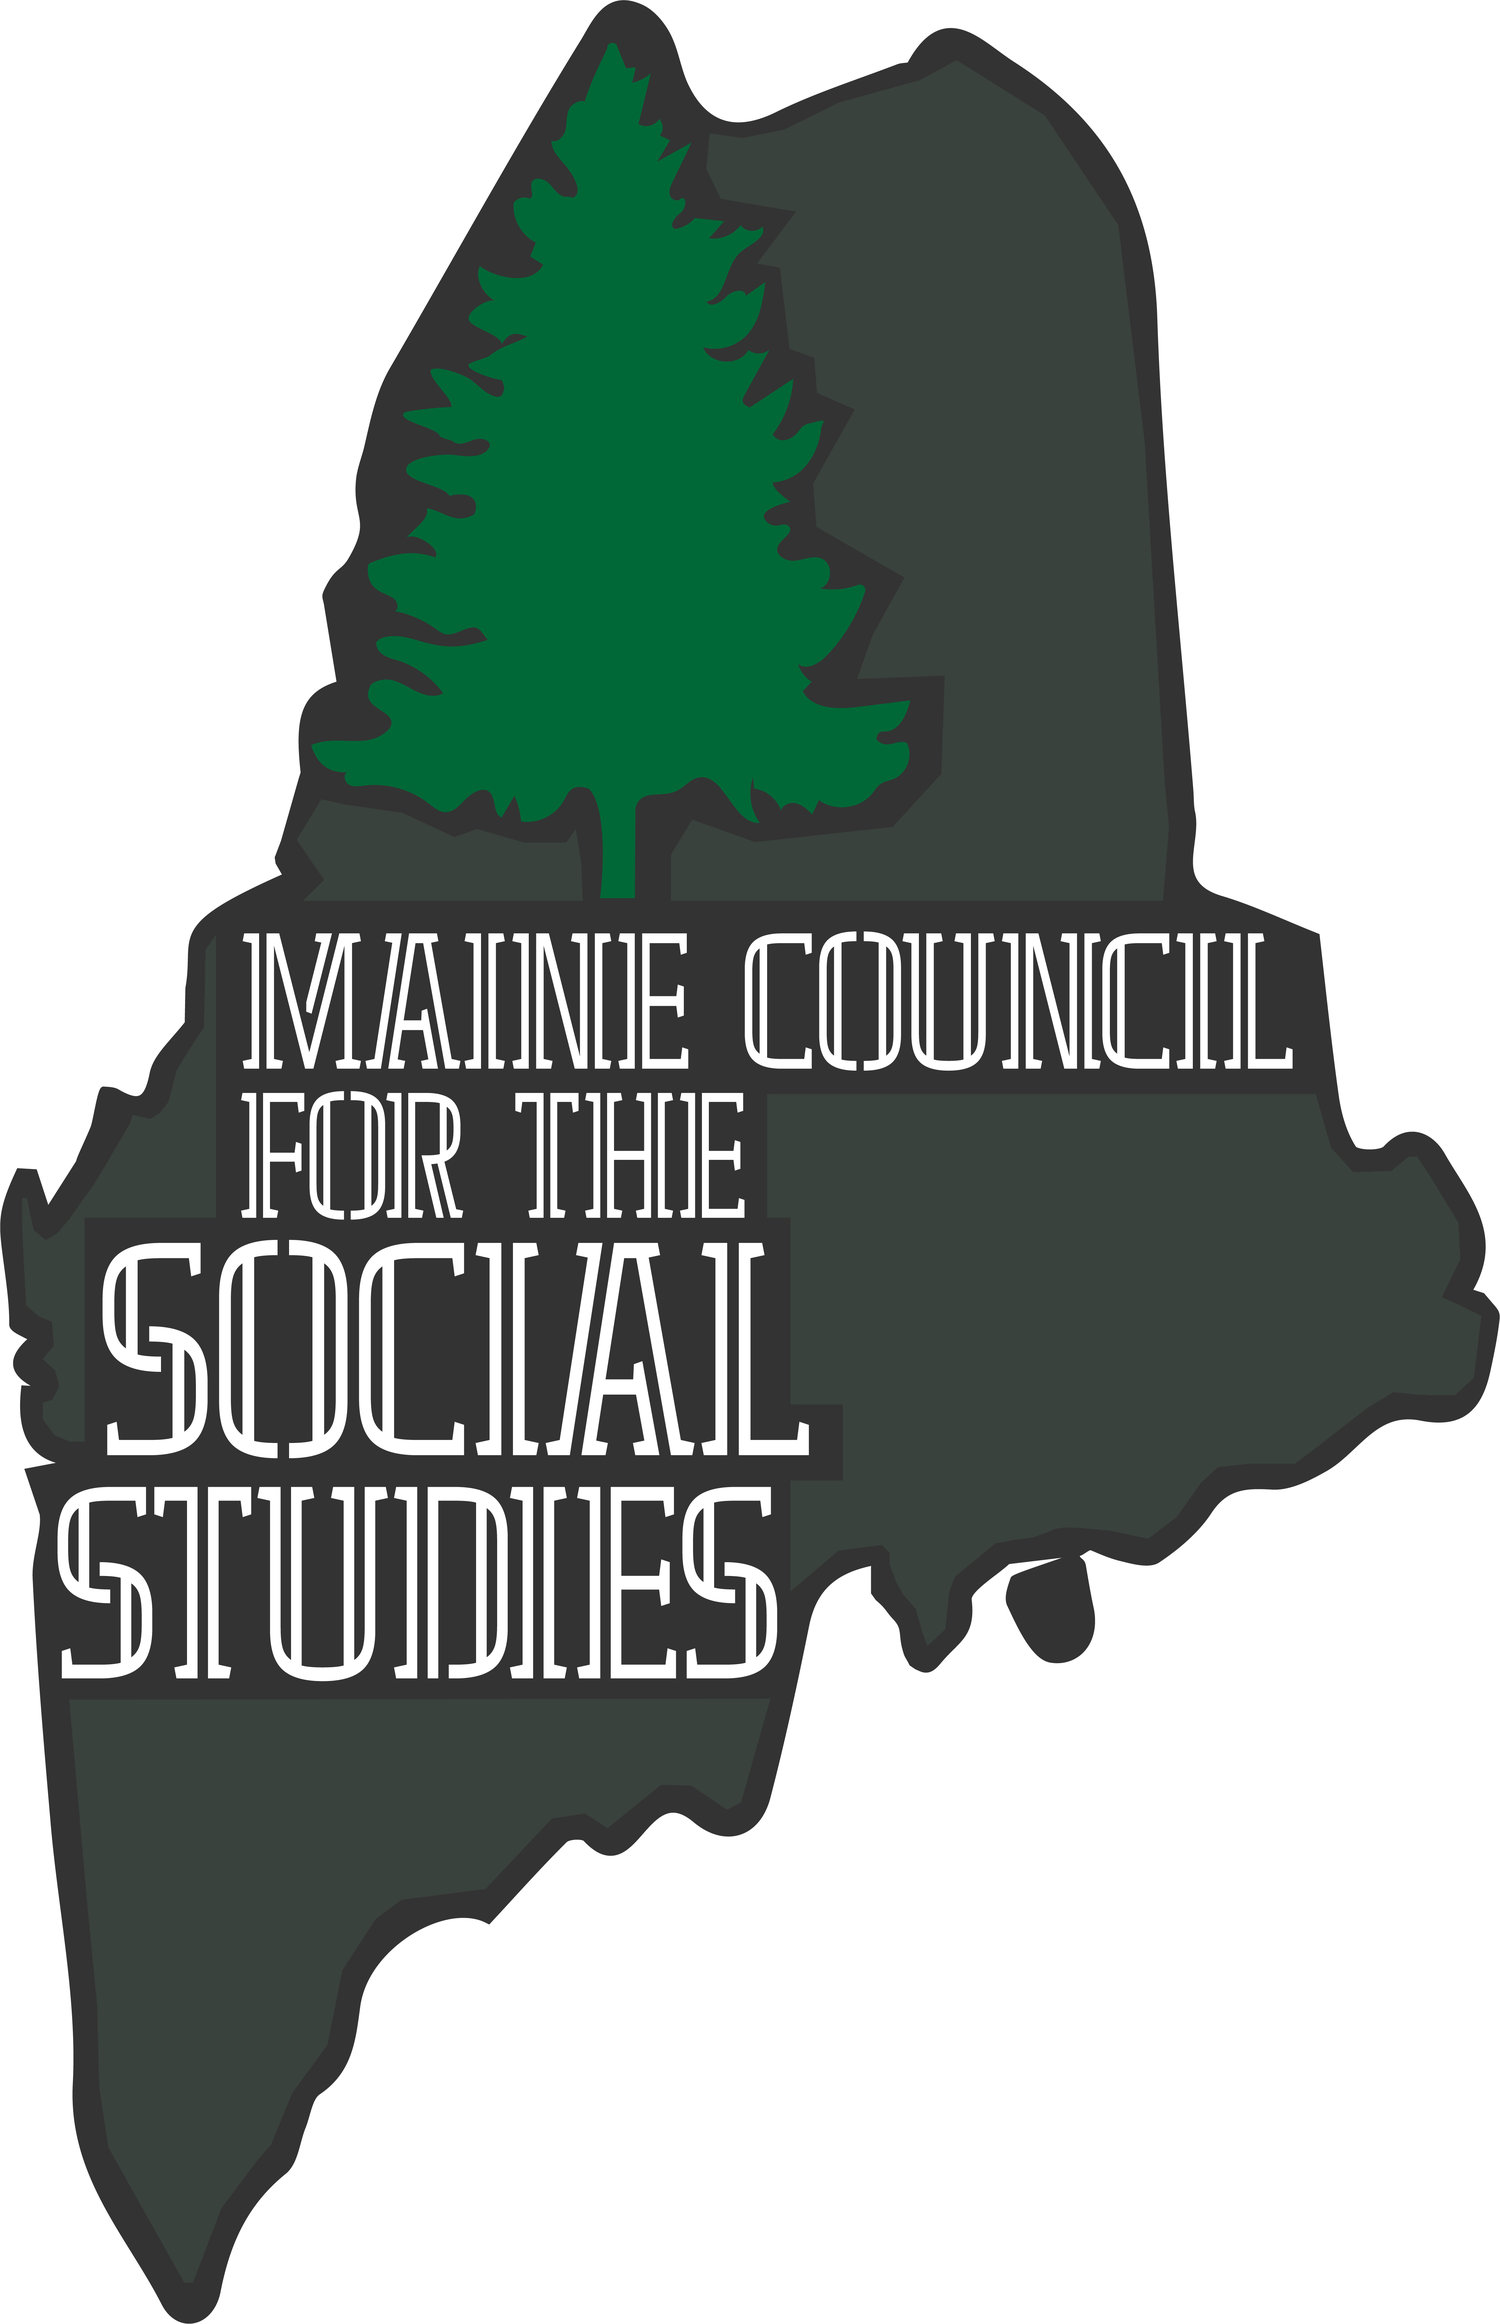 Maine Council for the Social Studies